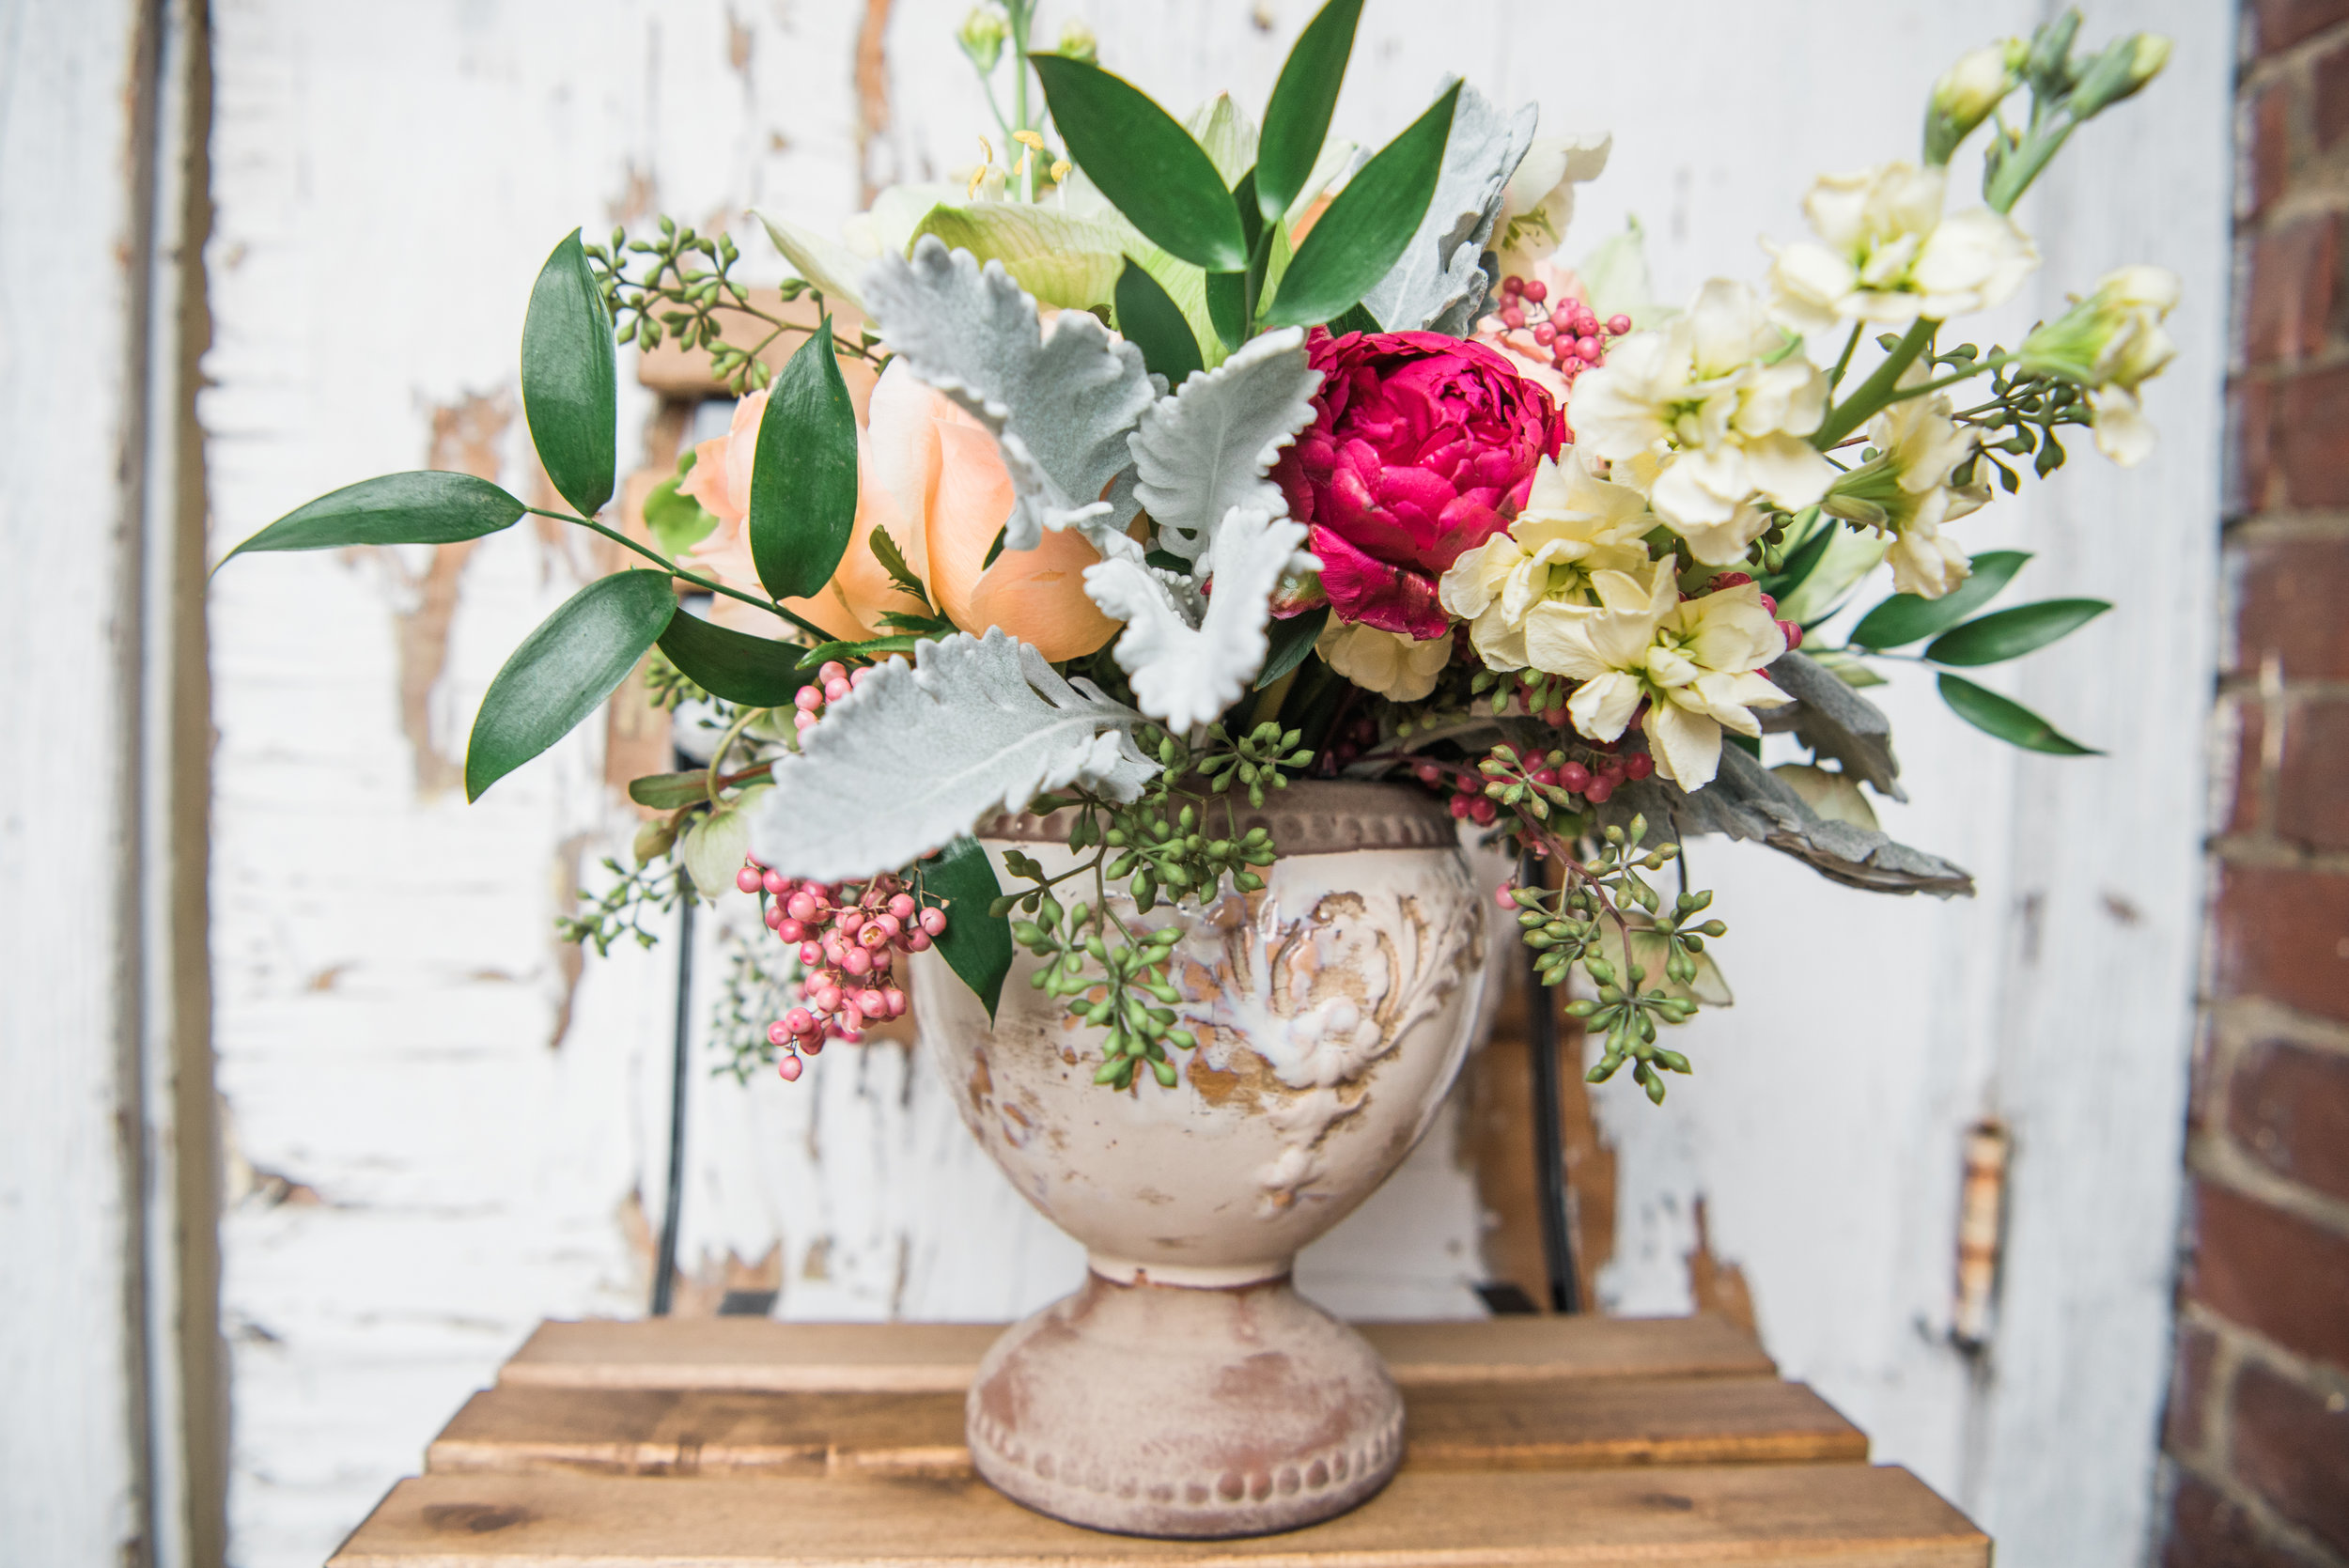 Alexa Gallishaw's florals from December's small business promo